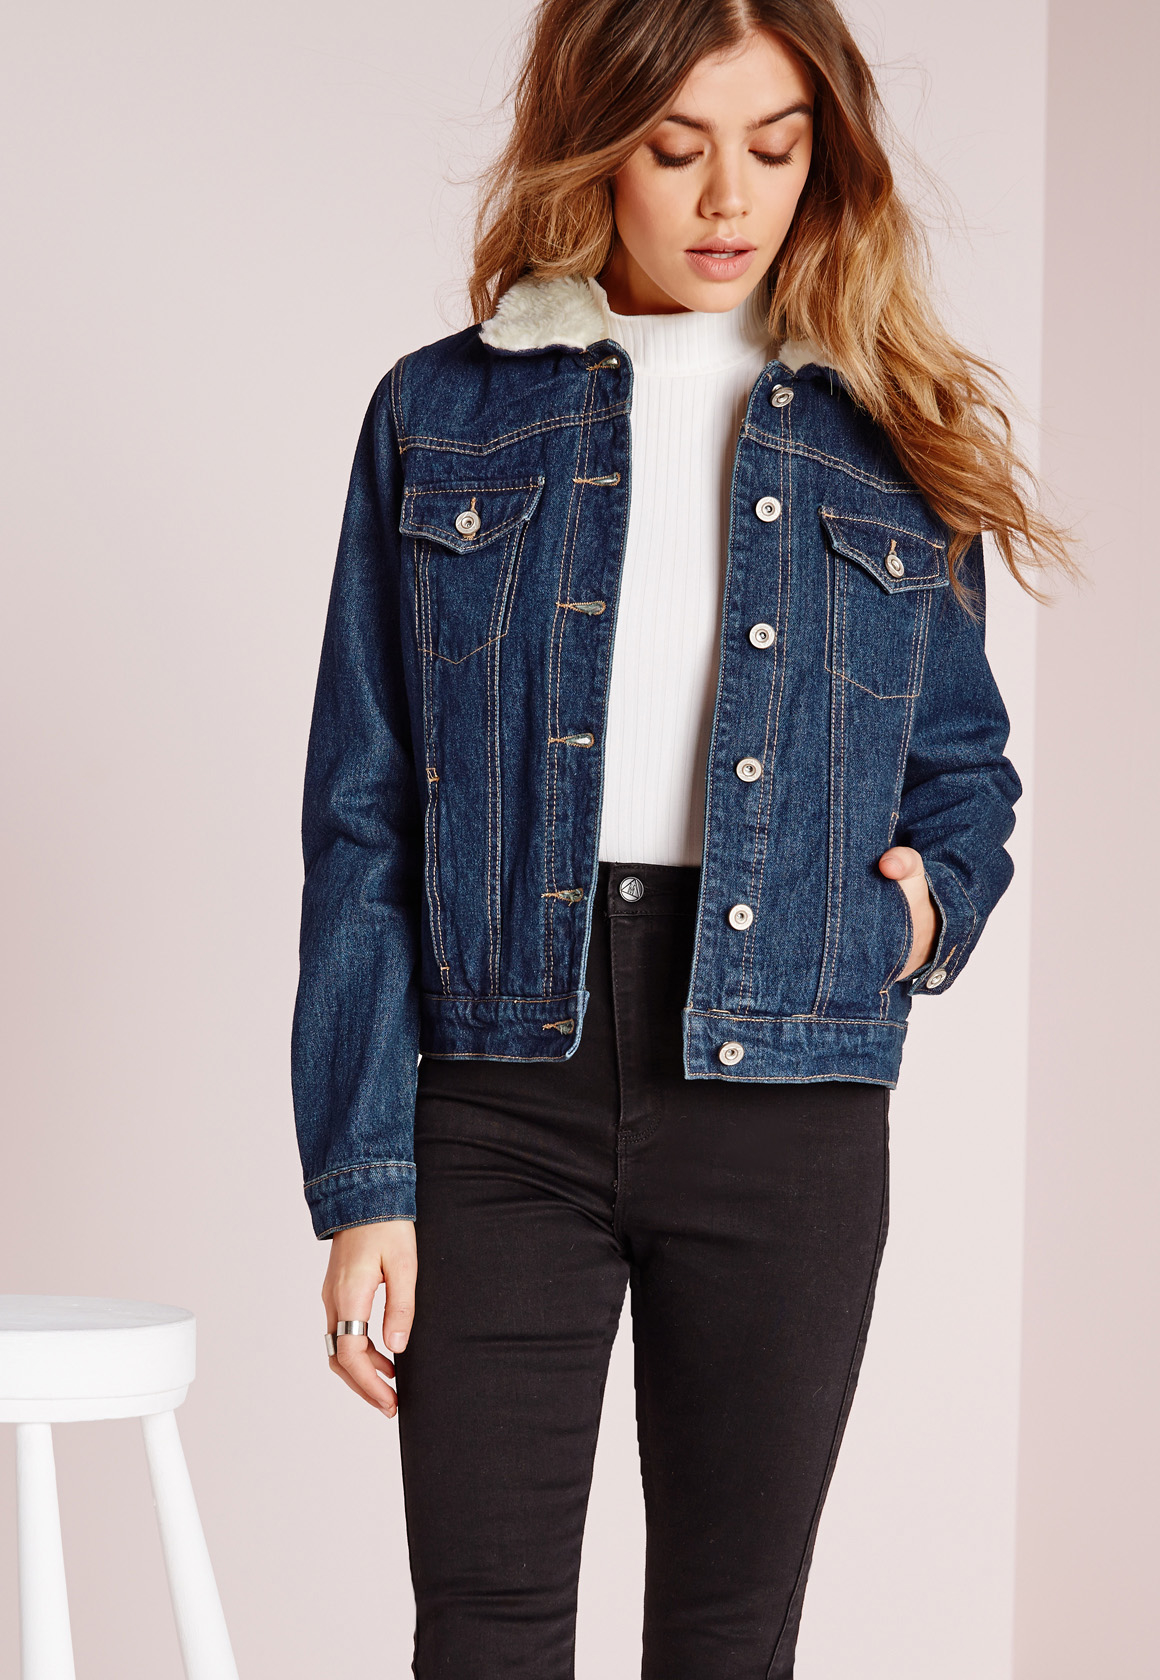 Sheepskin Denim Jacket | Outdoor Jacket